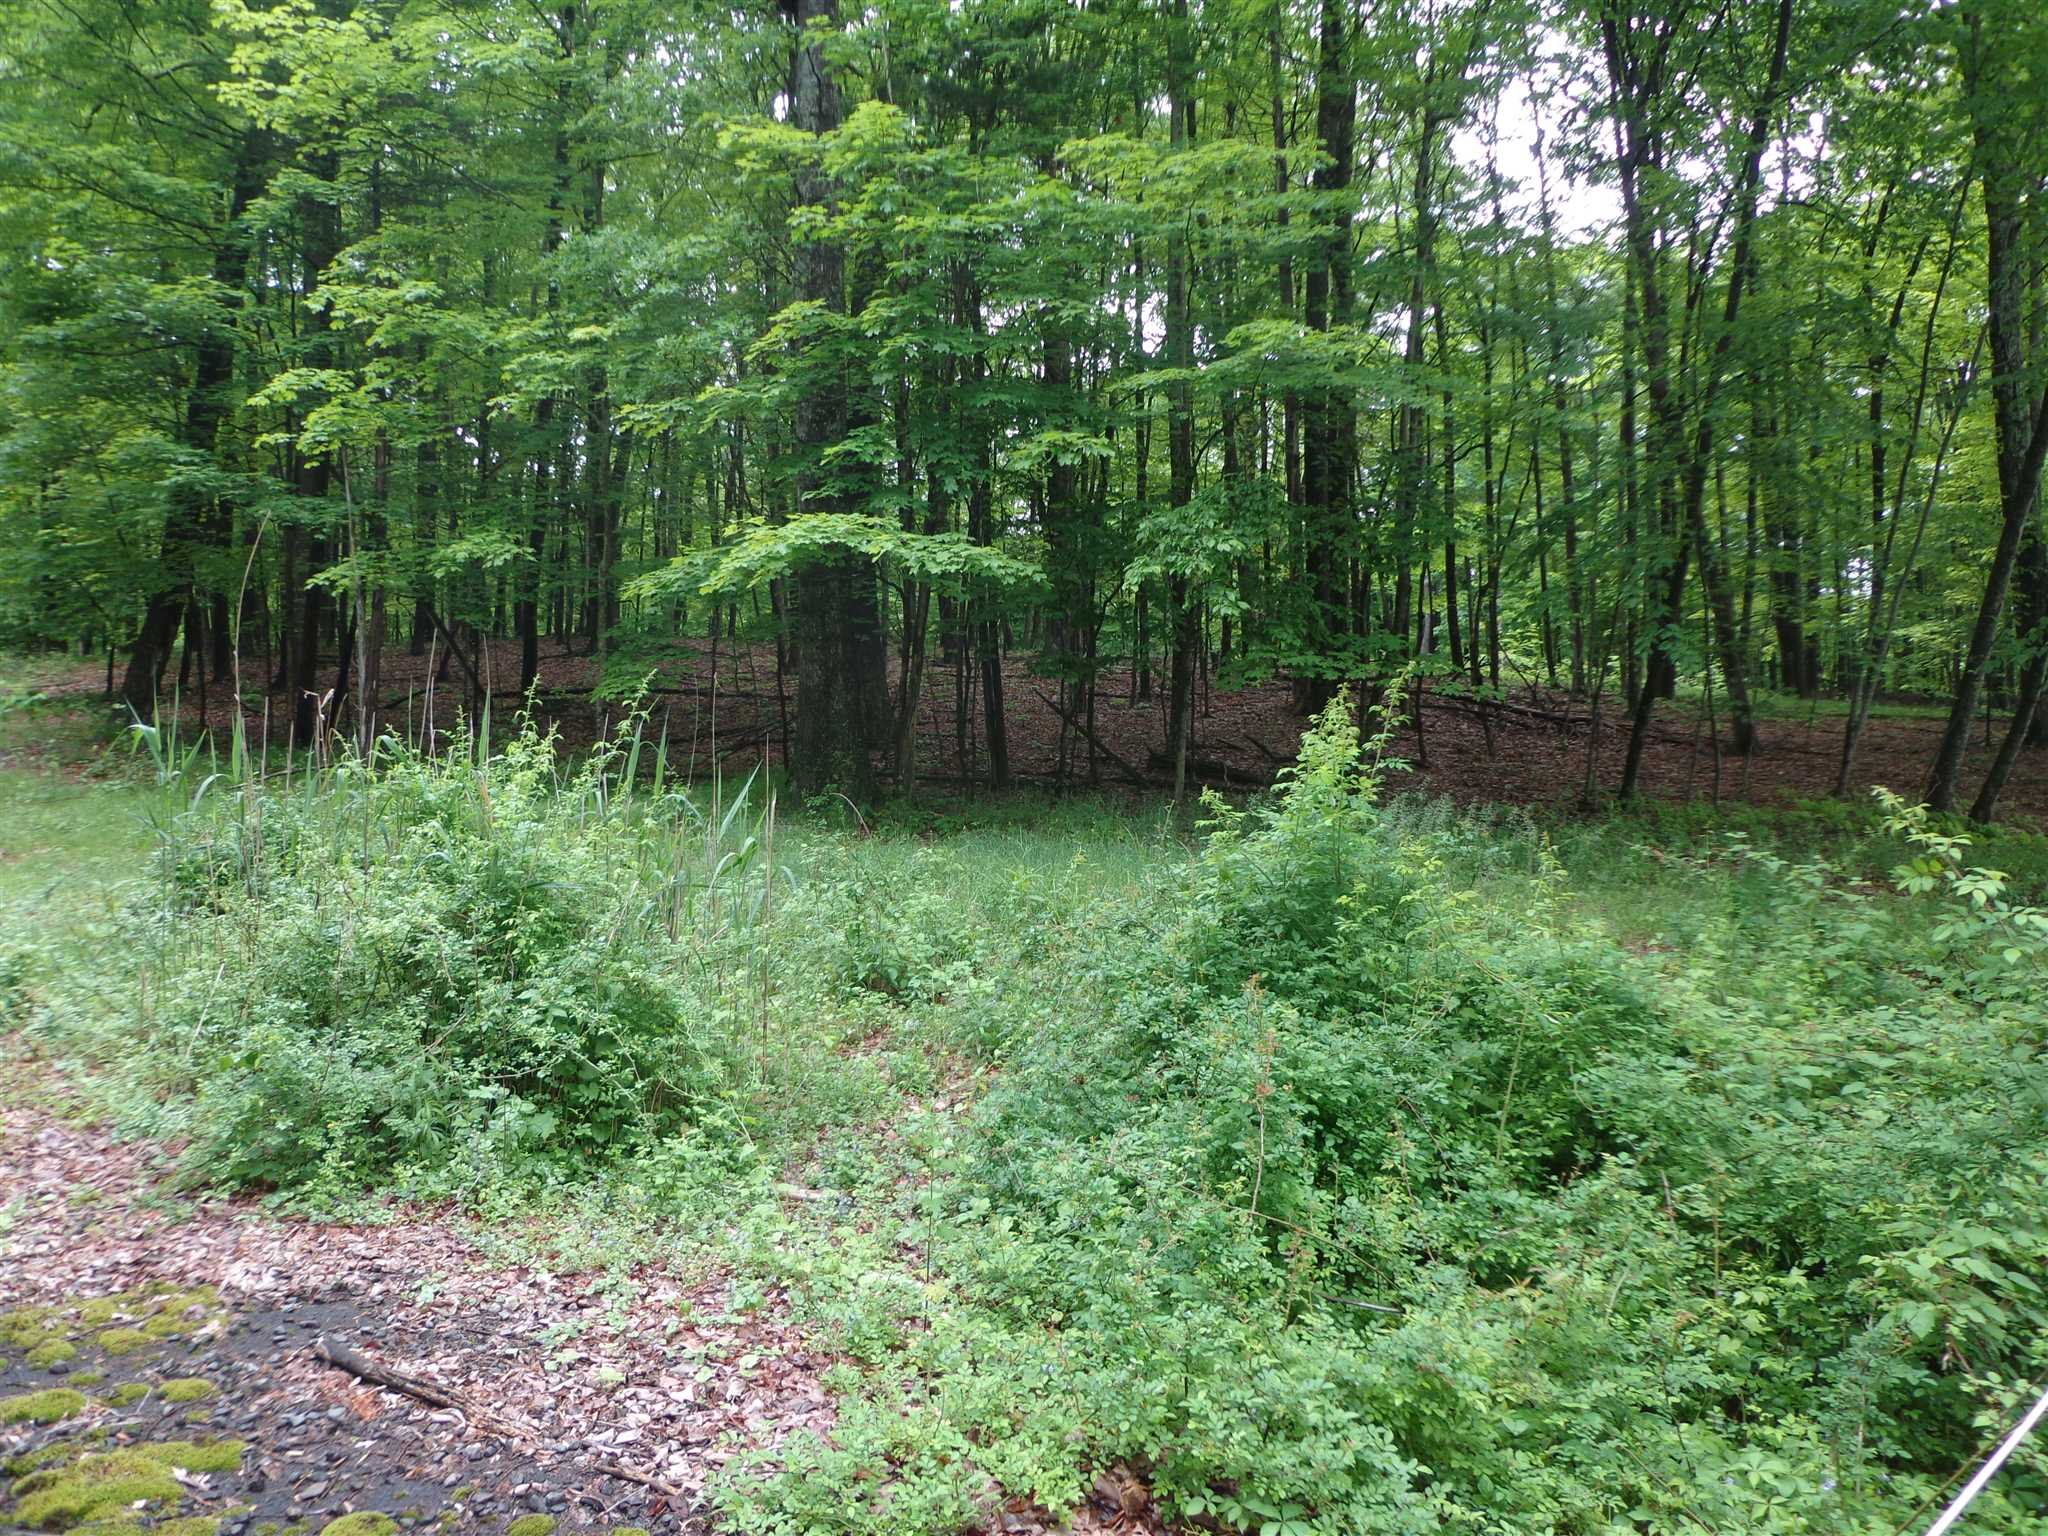 Land for Sale at ACKERT HOOK Road ACKERT HOOK Road Rhinebeck, New York 12571 United States